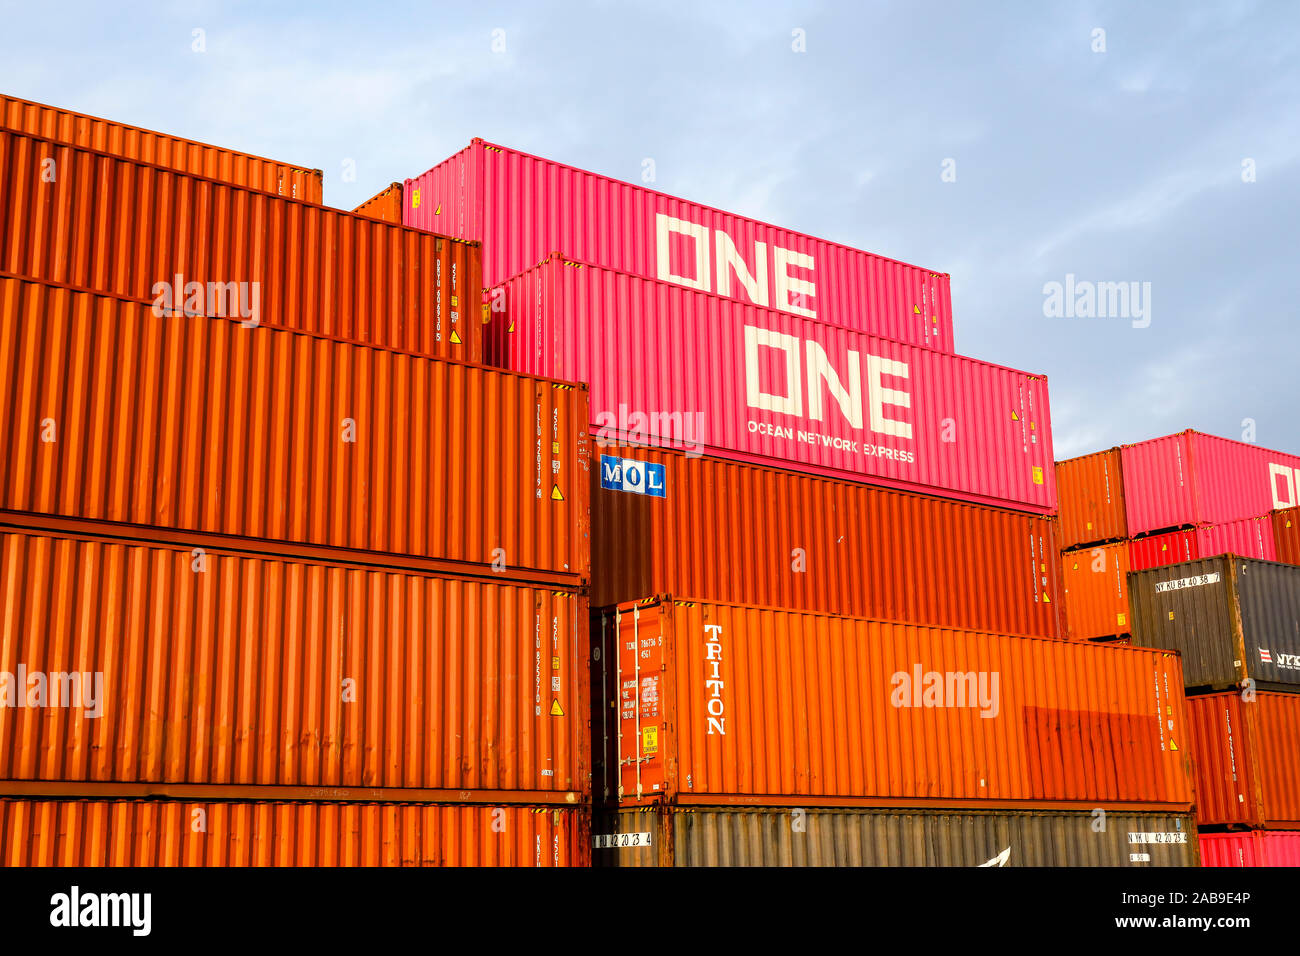 Seecontainer Seecontainer High Resolution Stock Photography And Images - Alamy